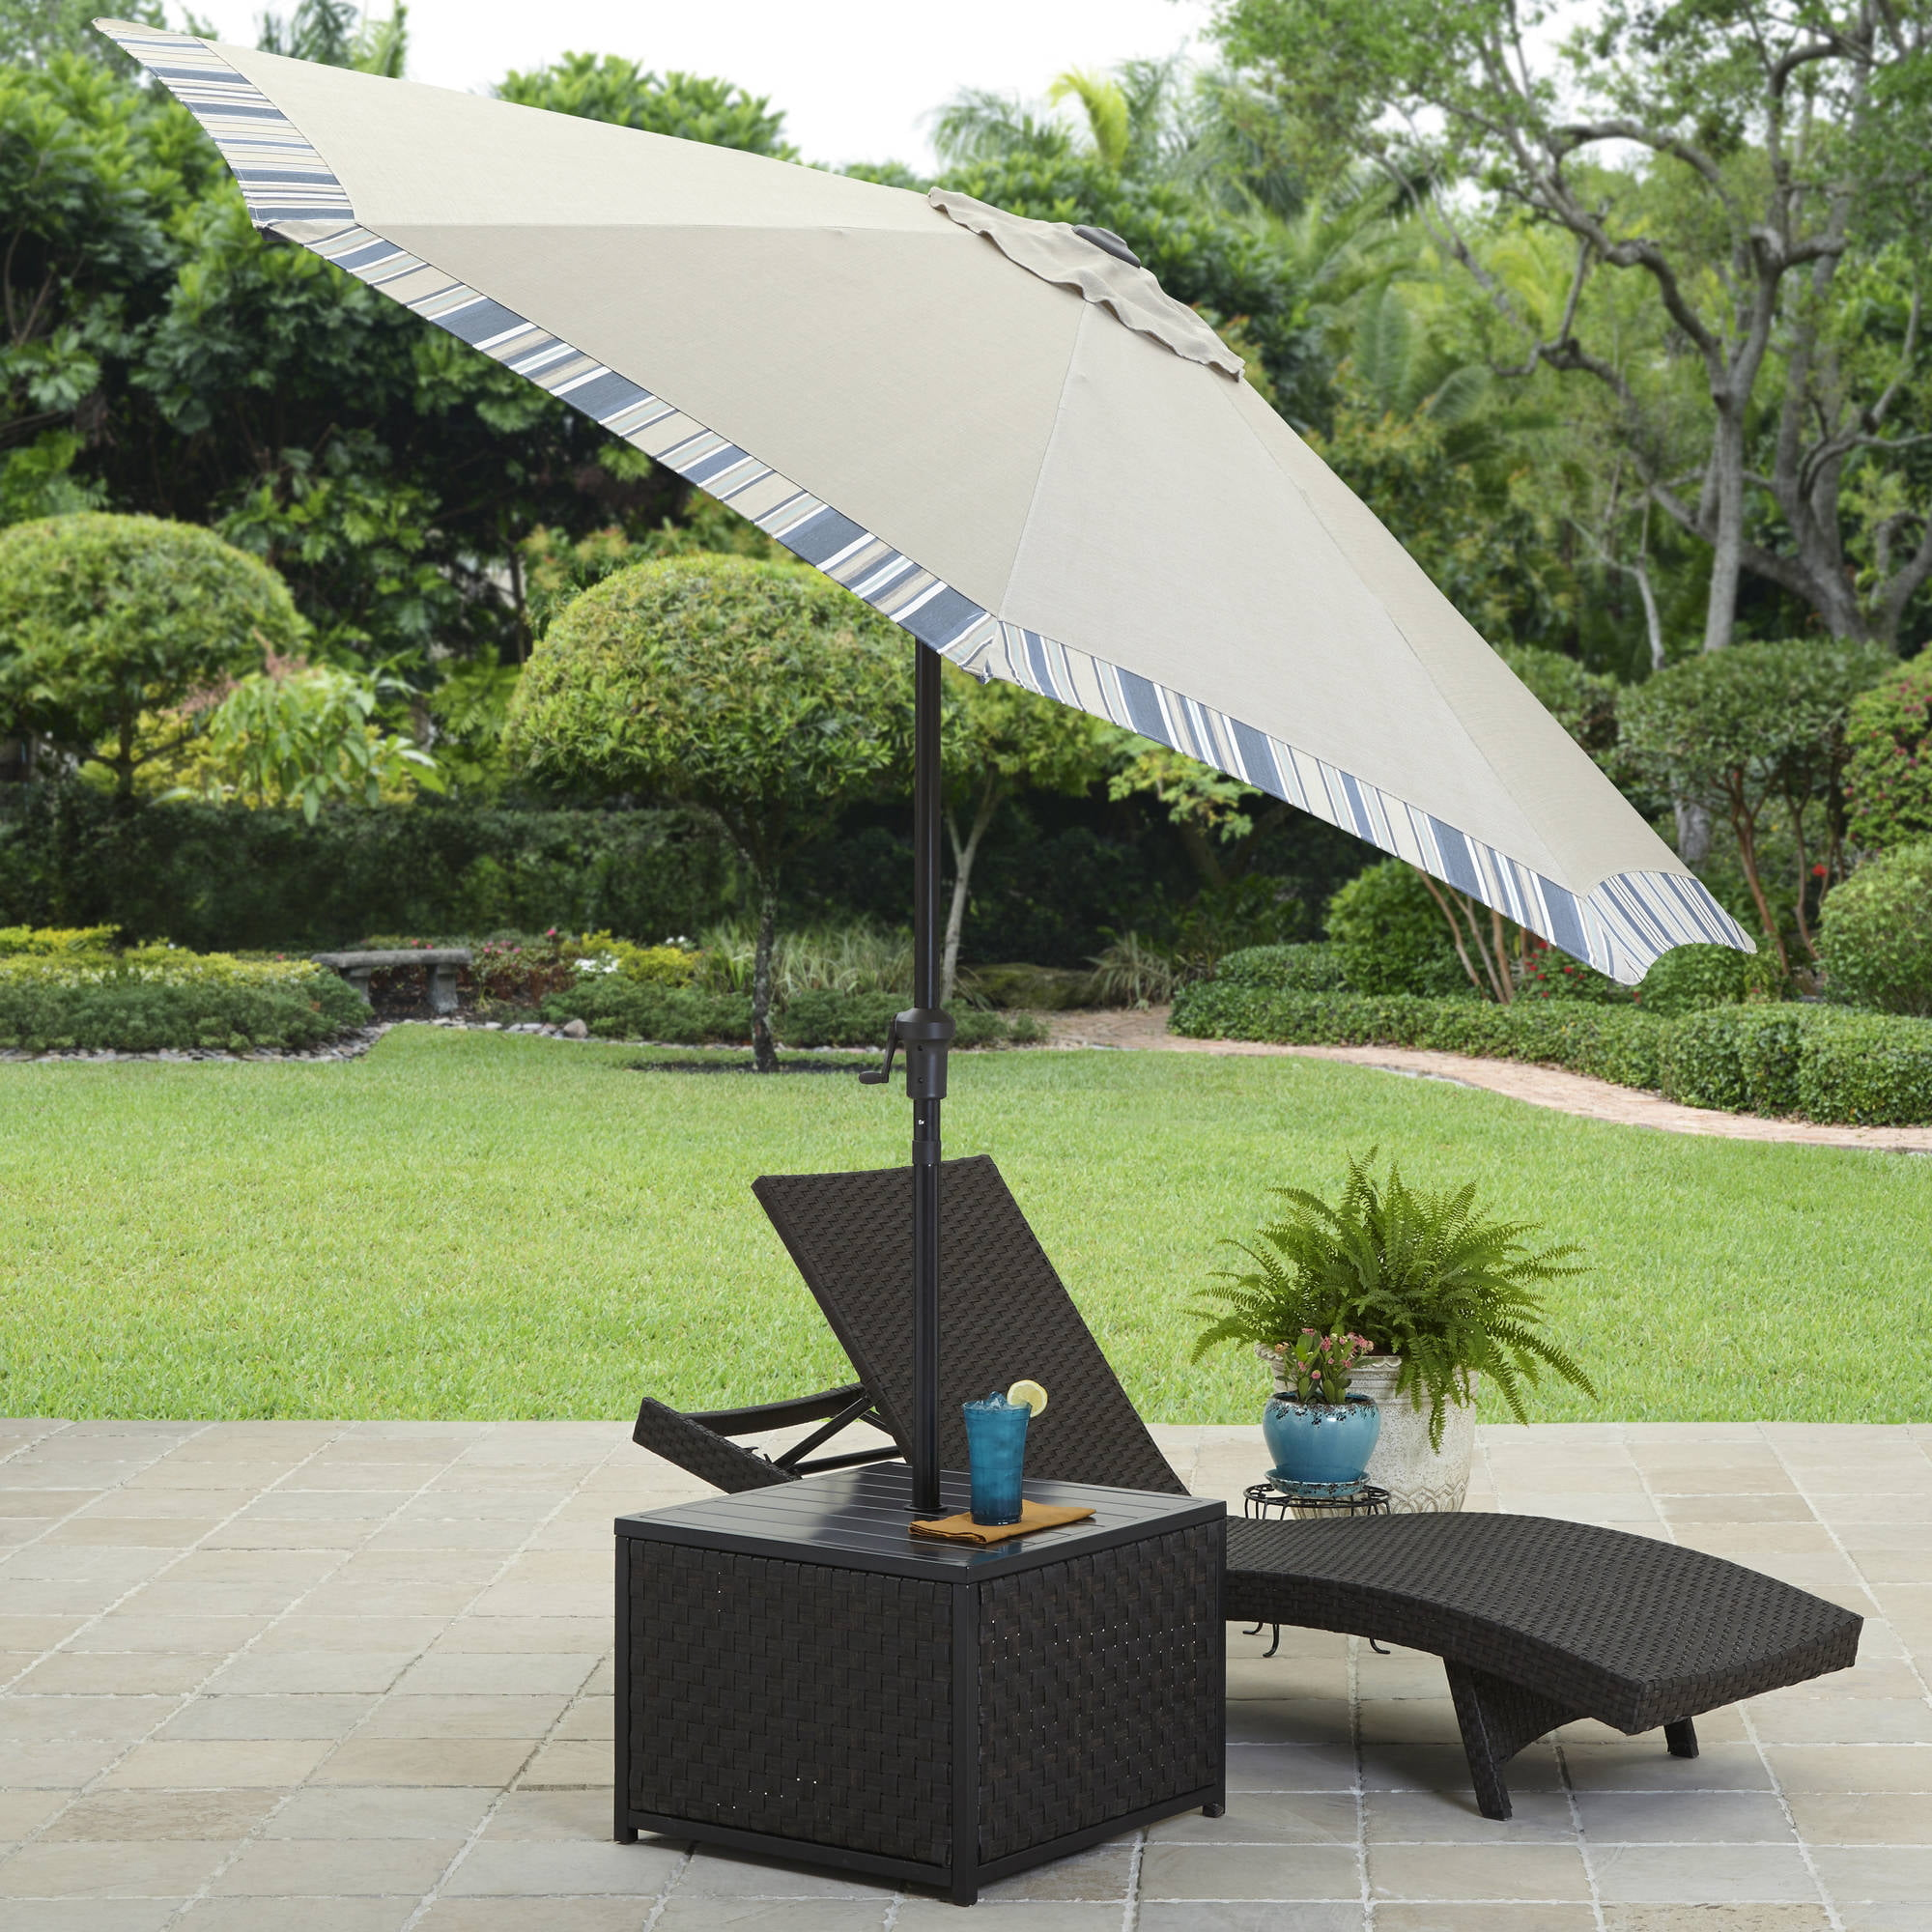 Better Homes and Gardens Avila Beach Umbrella Table - Walmart.com